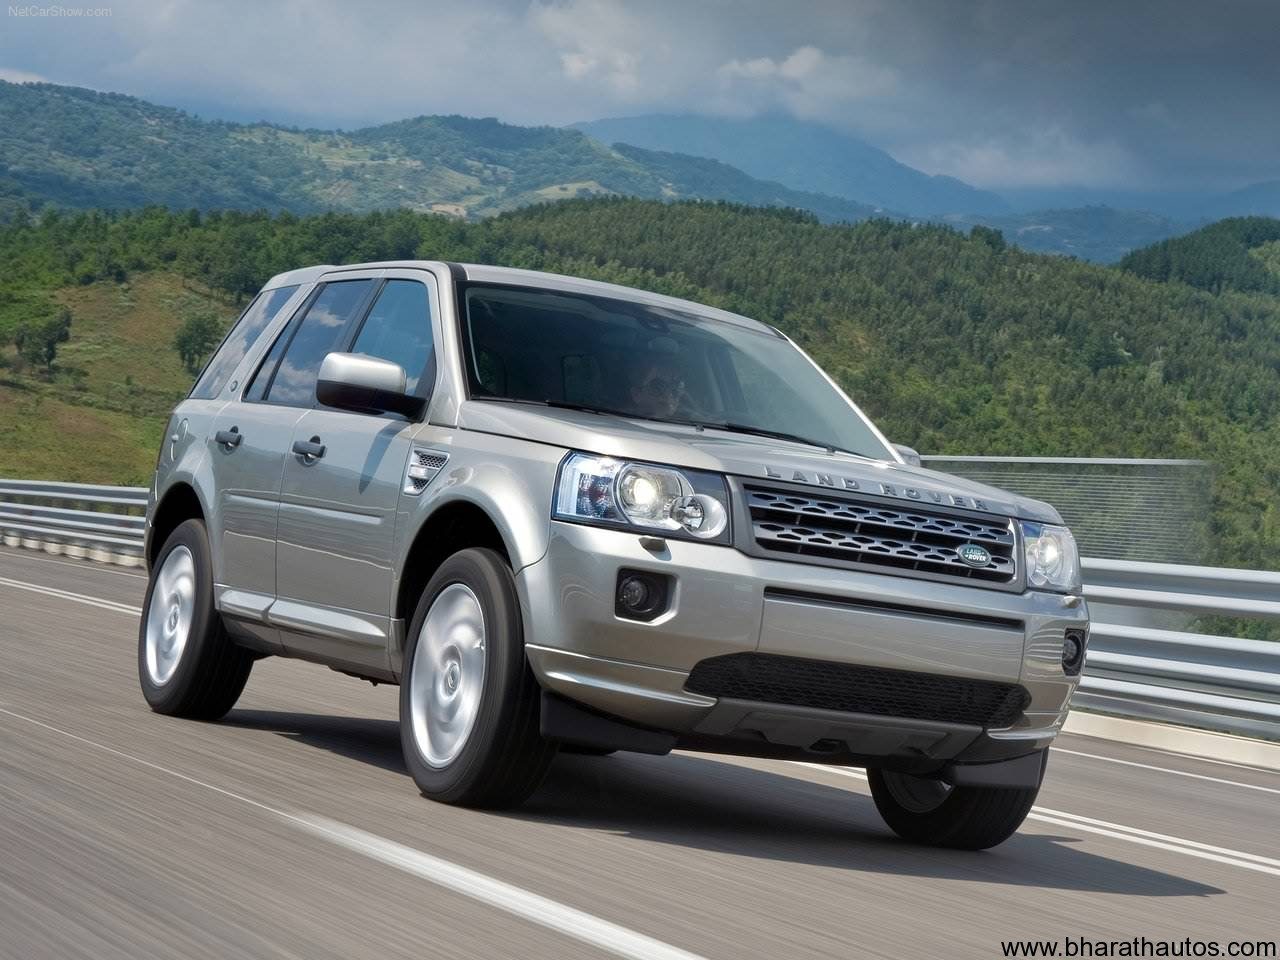 2011 land rover freelander 2 launched in india. Black Bedroom Furniture Sets. Home Design Ideas